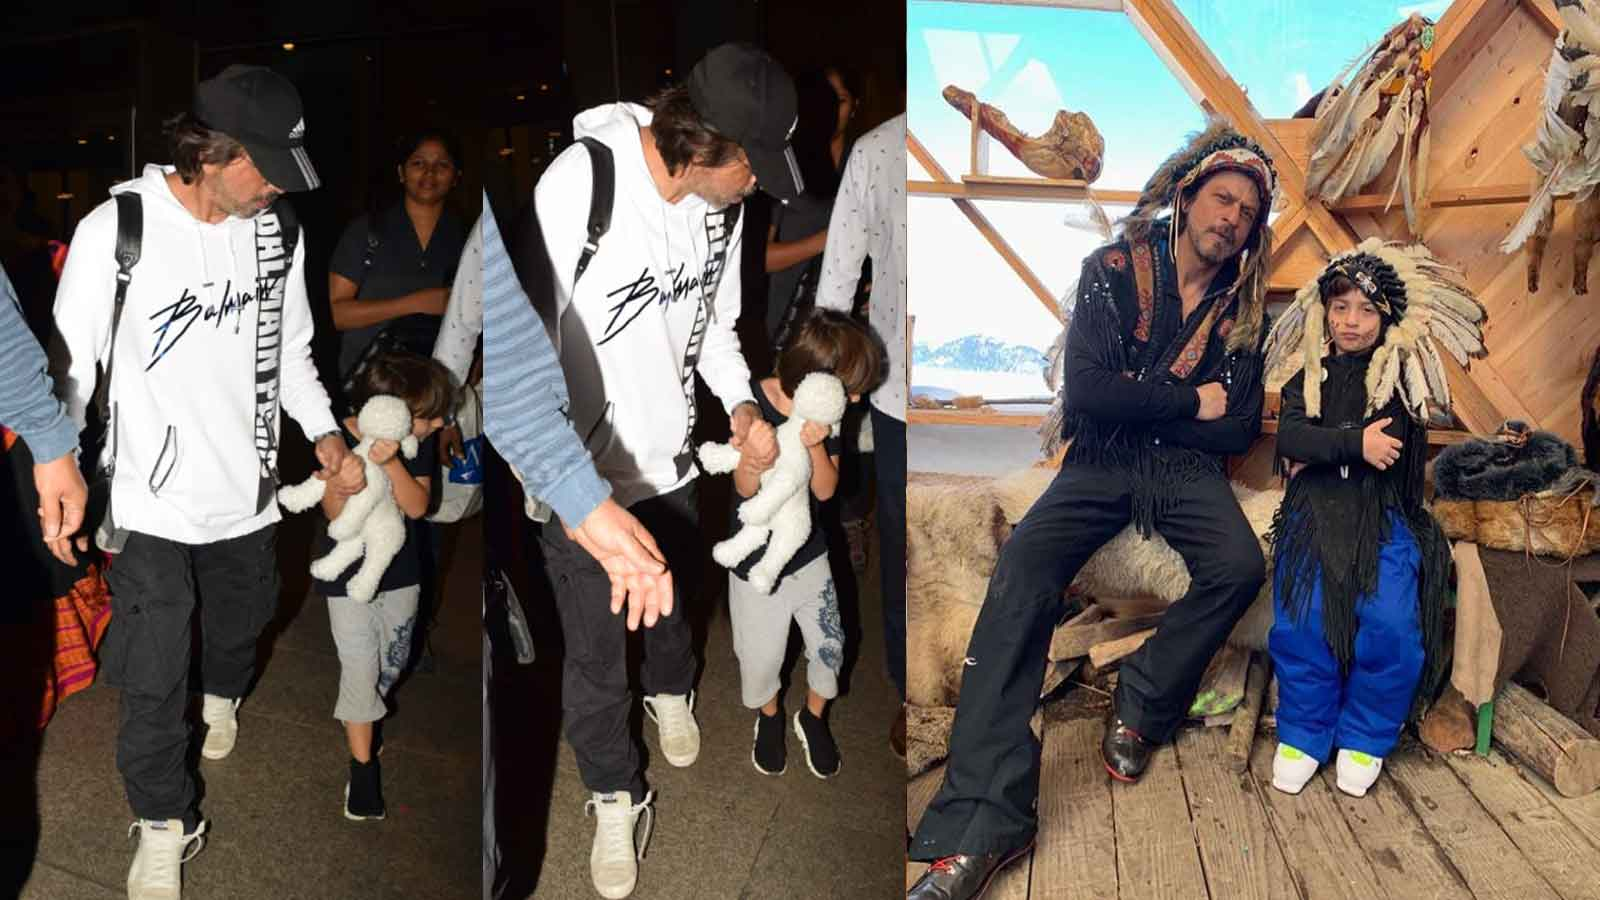 shah-rukh-khans-son-abram-hides-face-from-paps-gauri-khan-shares-pic-of-father-son-duo-as-native-americans